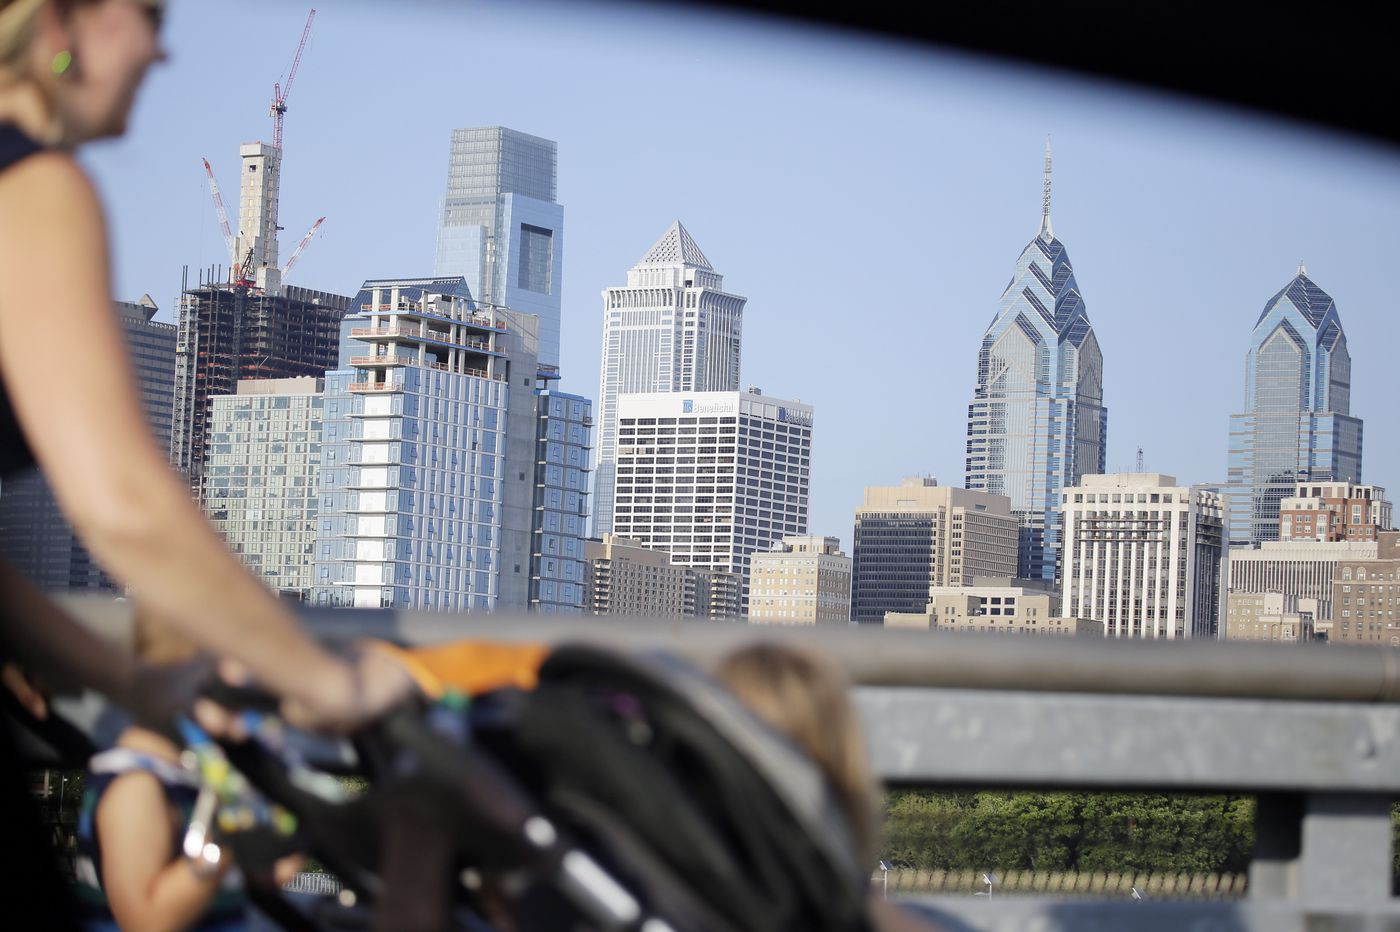 Want to build a better Philadelphia? Expert says to design for ages 8 and 80 | Opinion